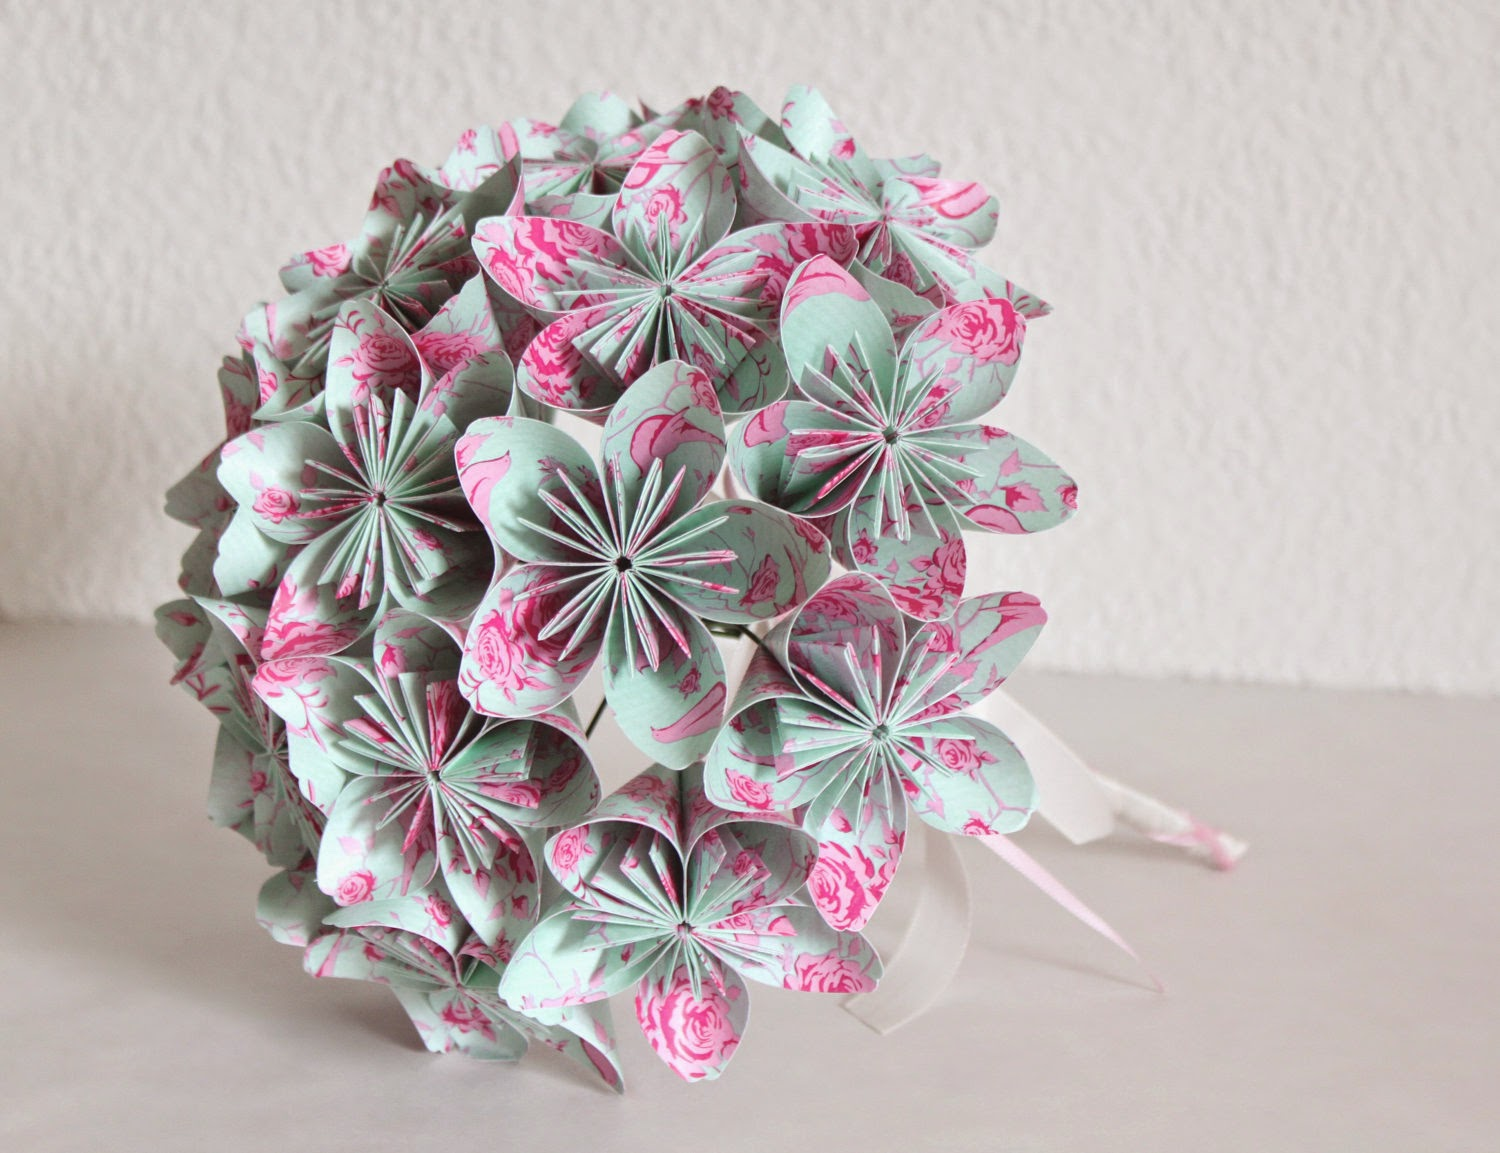 Origami Flower Bouquet Photo 3d Origami For Kids